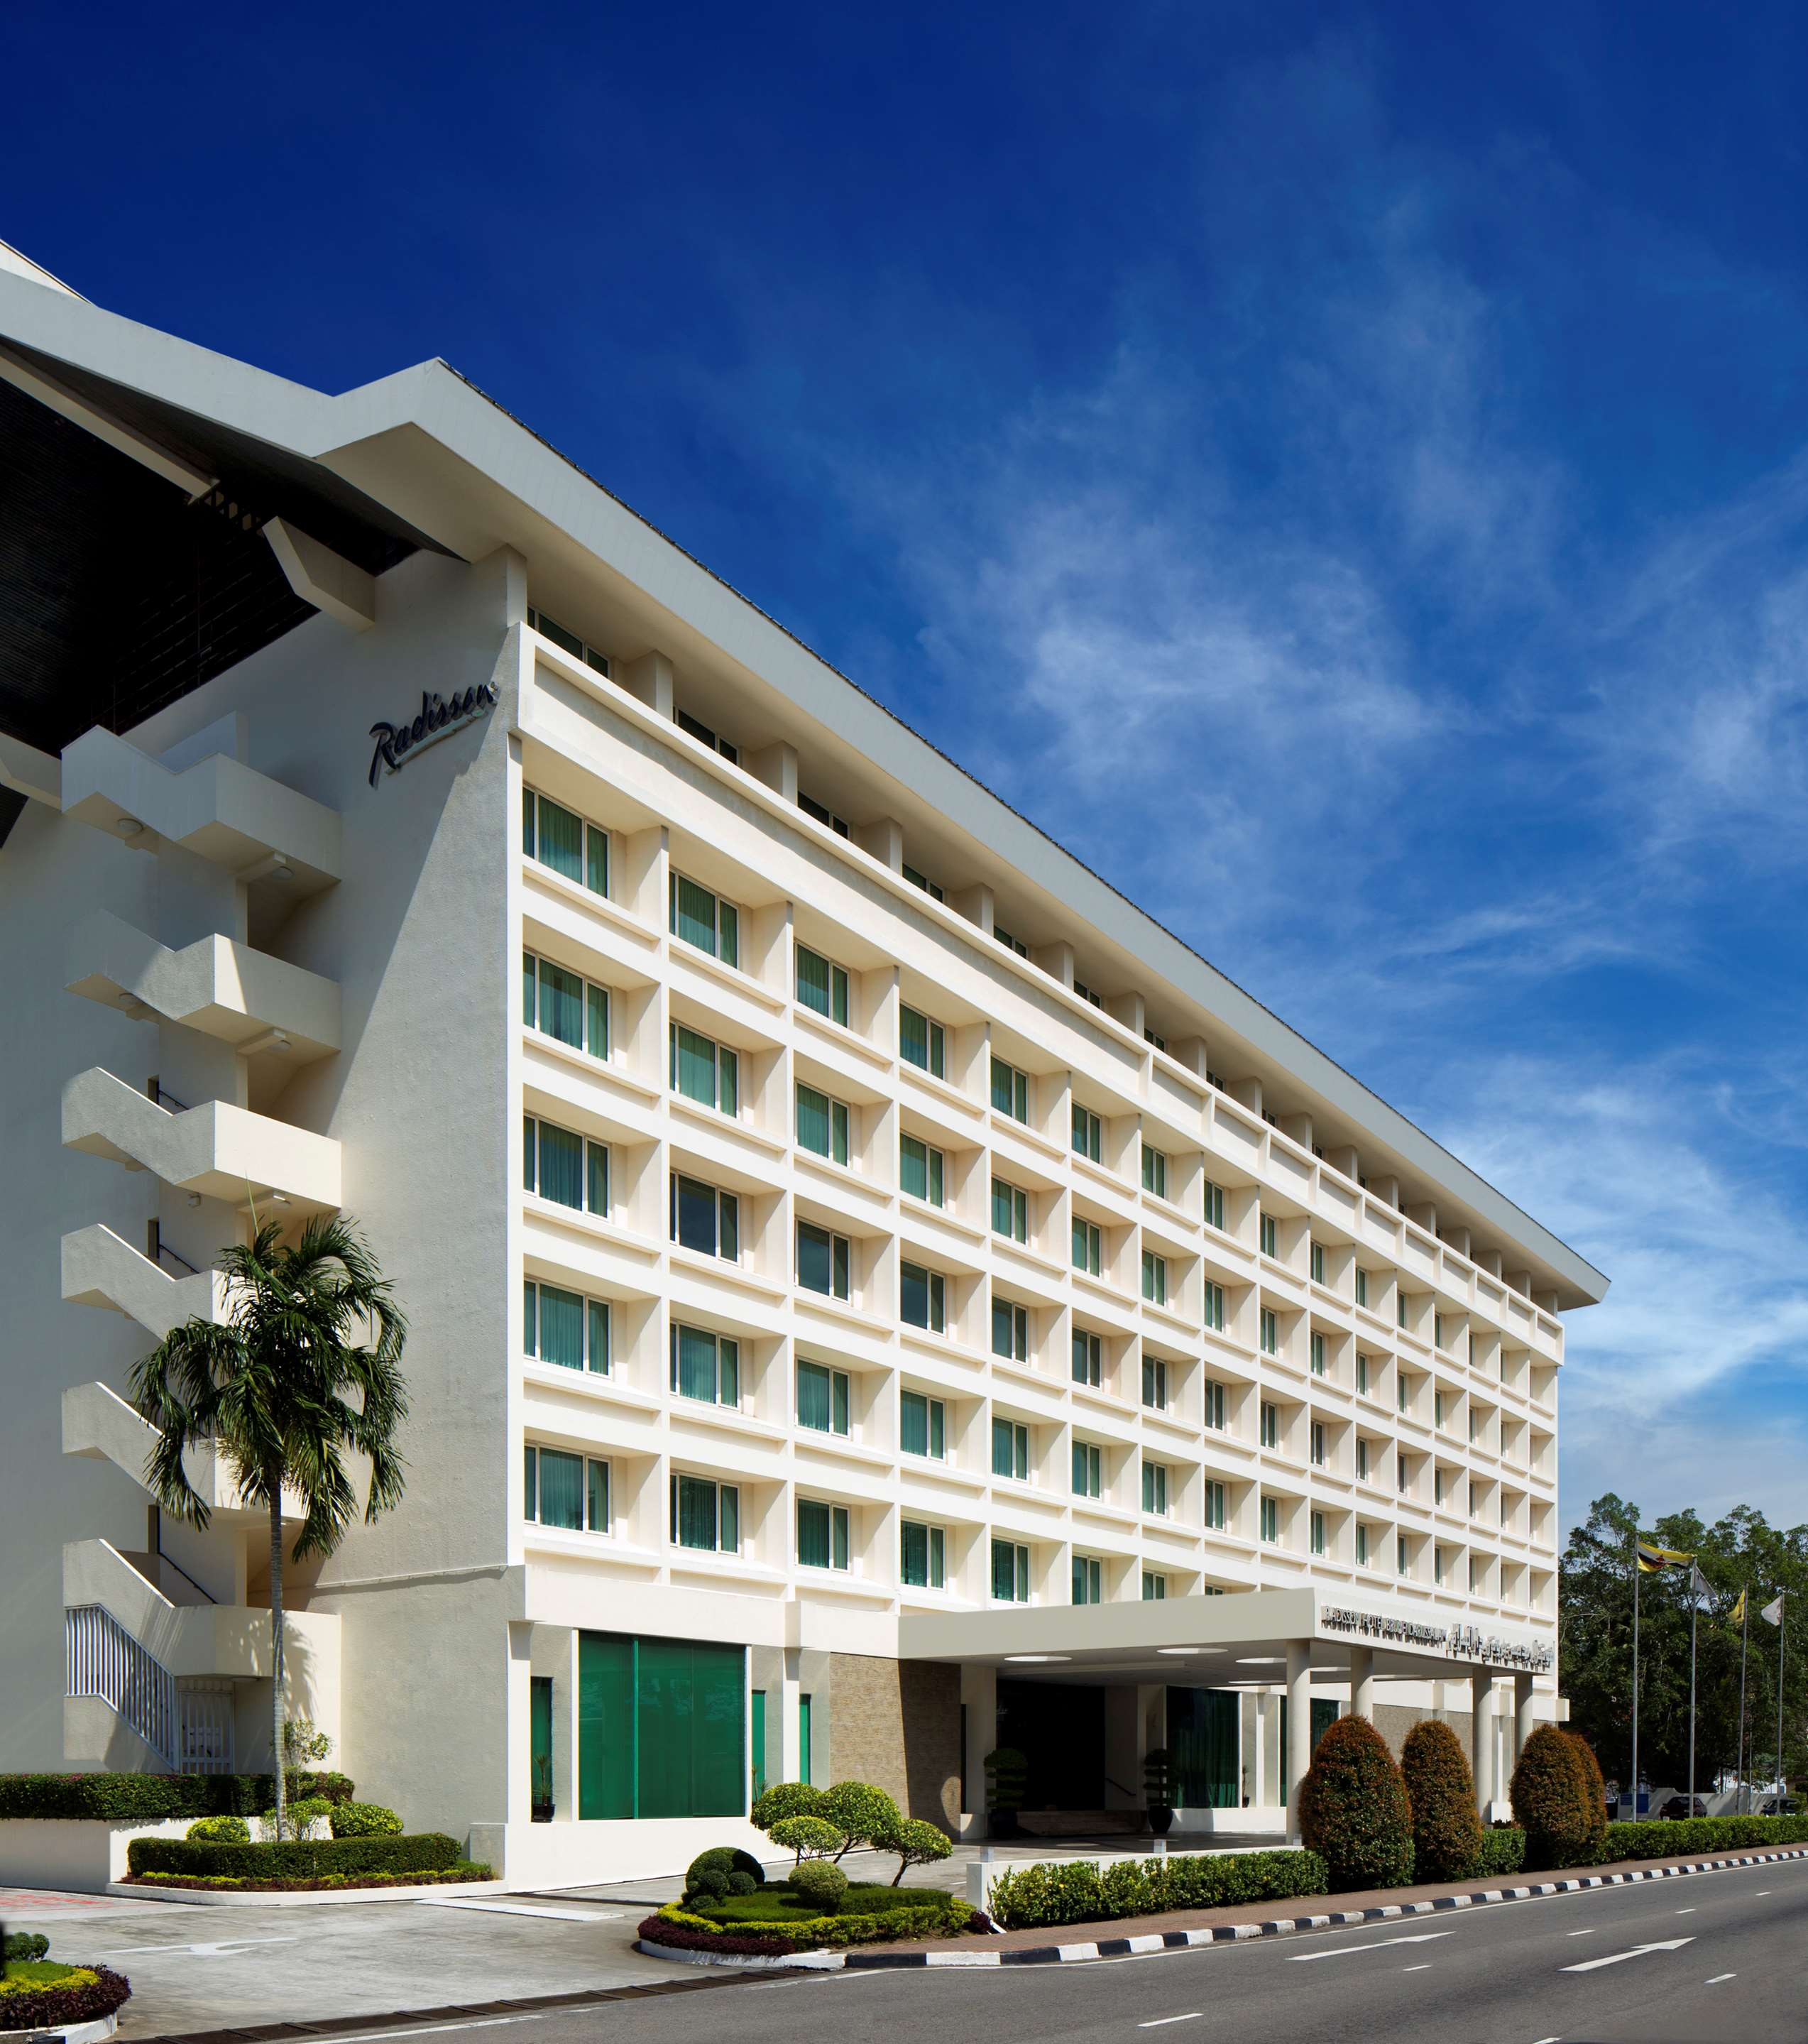 Hotels in Brunei | Radisson Hotel Brunei Darussalam